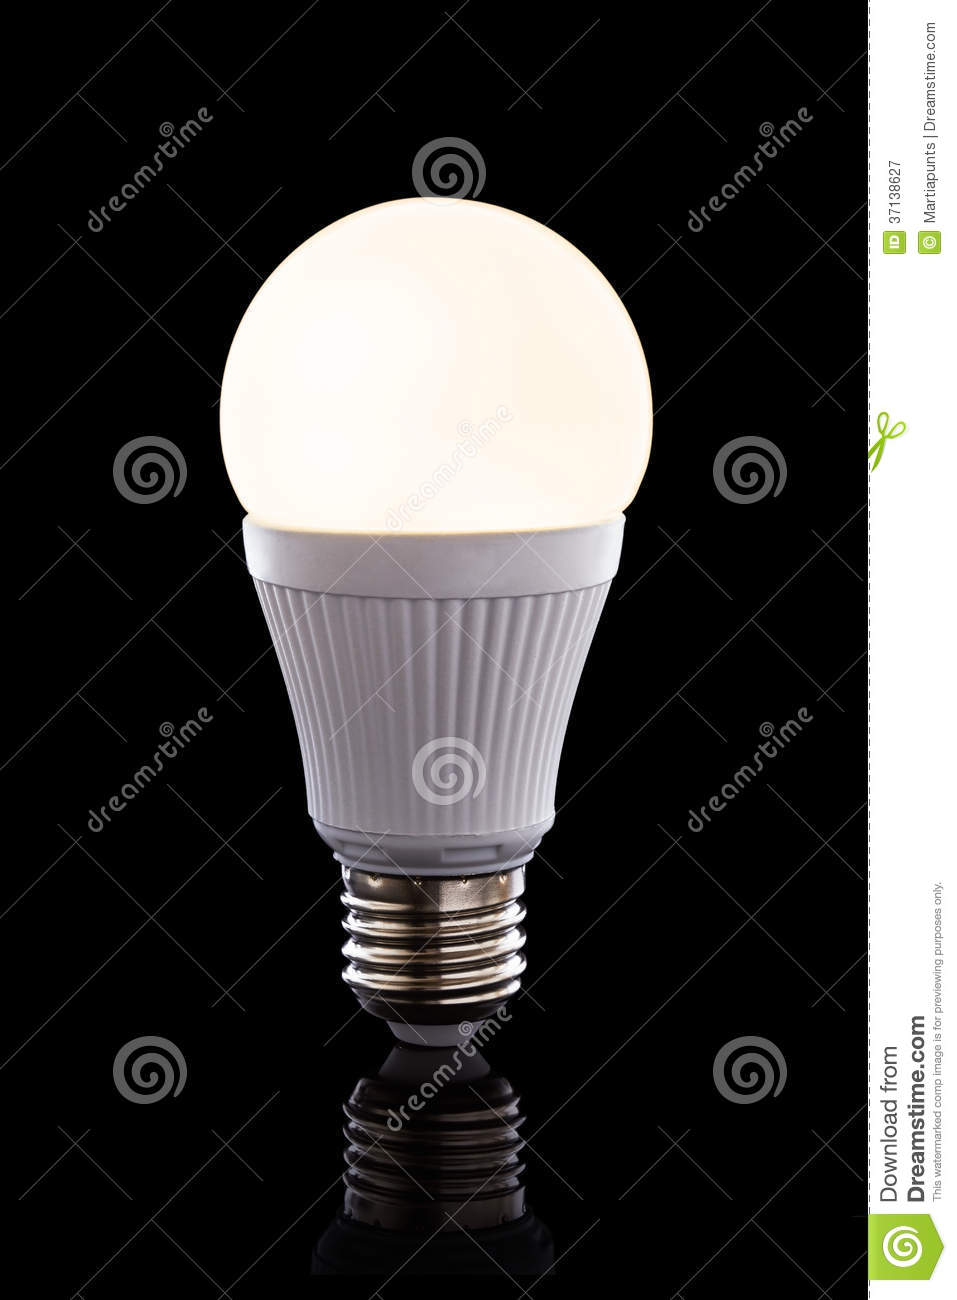 bright led light bulb royalty free stock photography. Black Bedroom Furniture Sets. Home Design Ideas